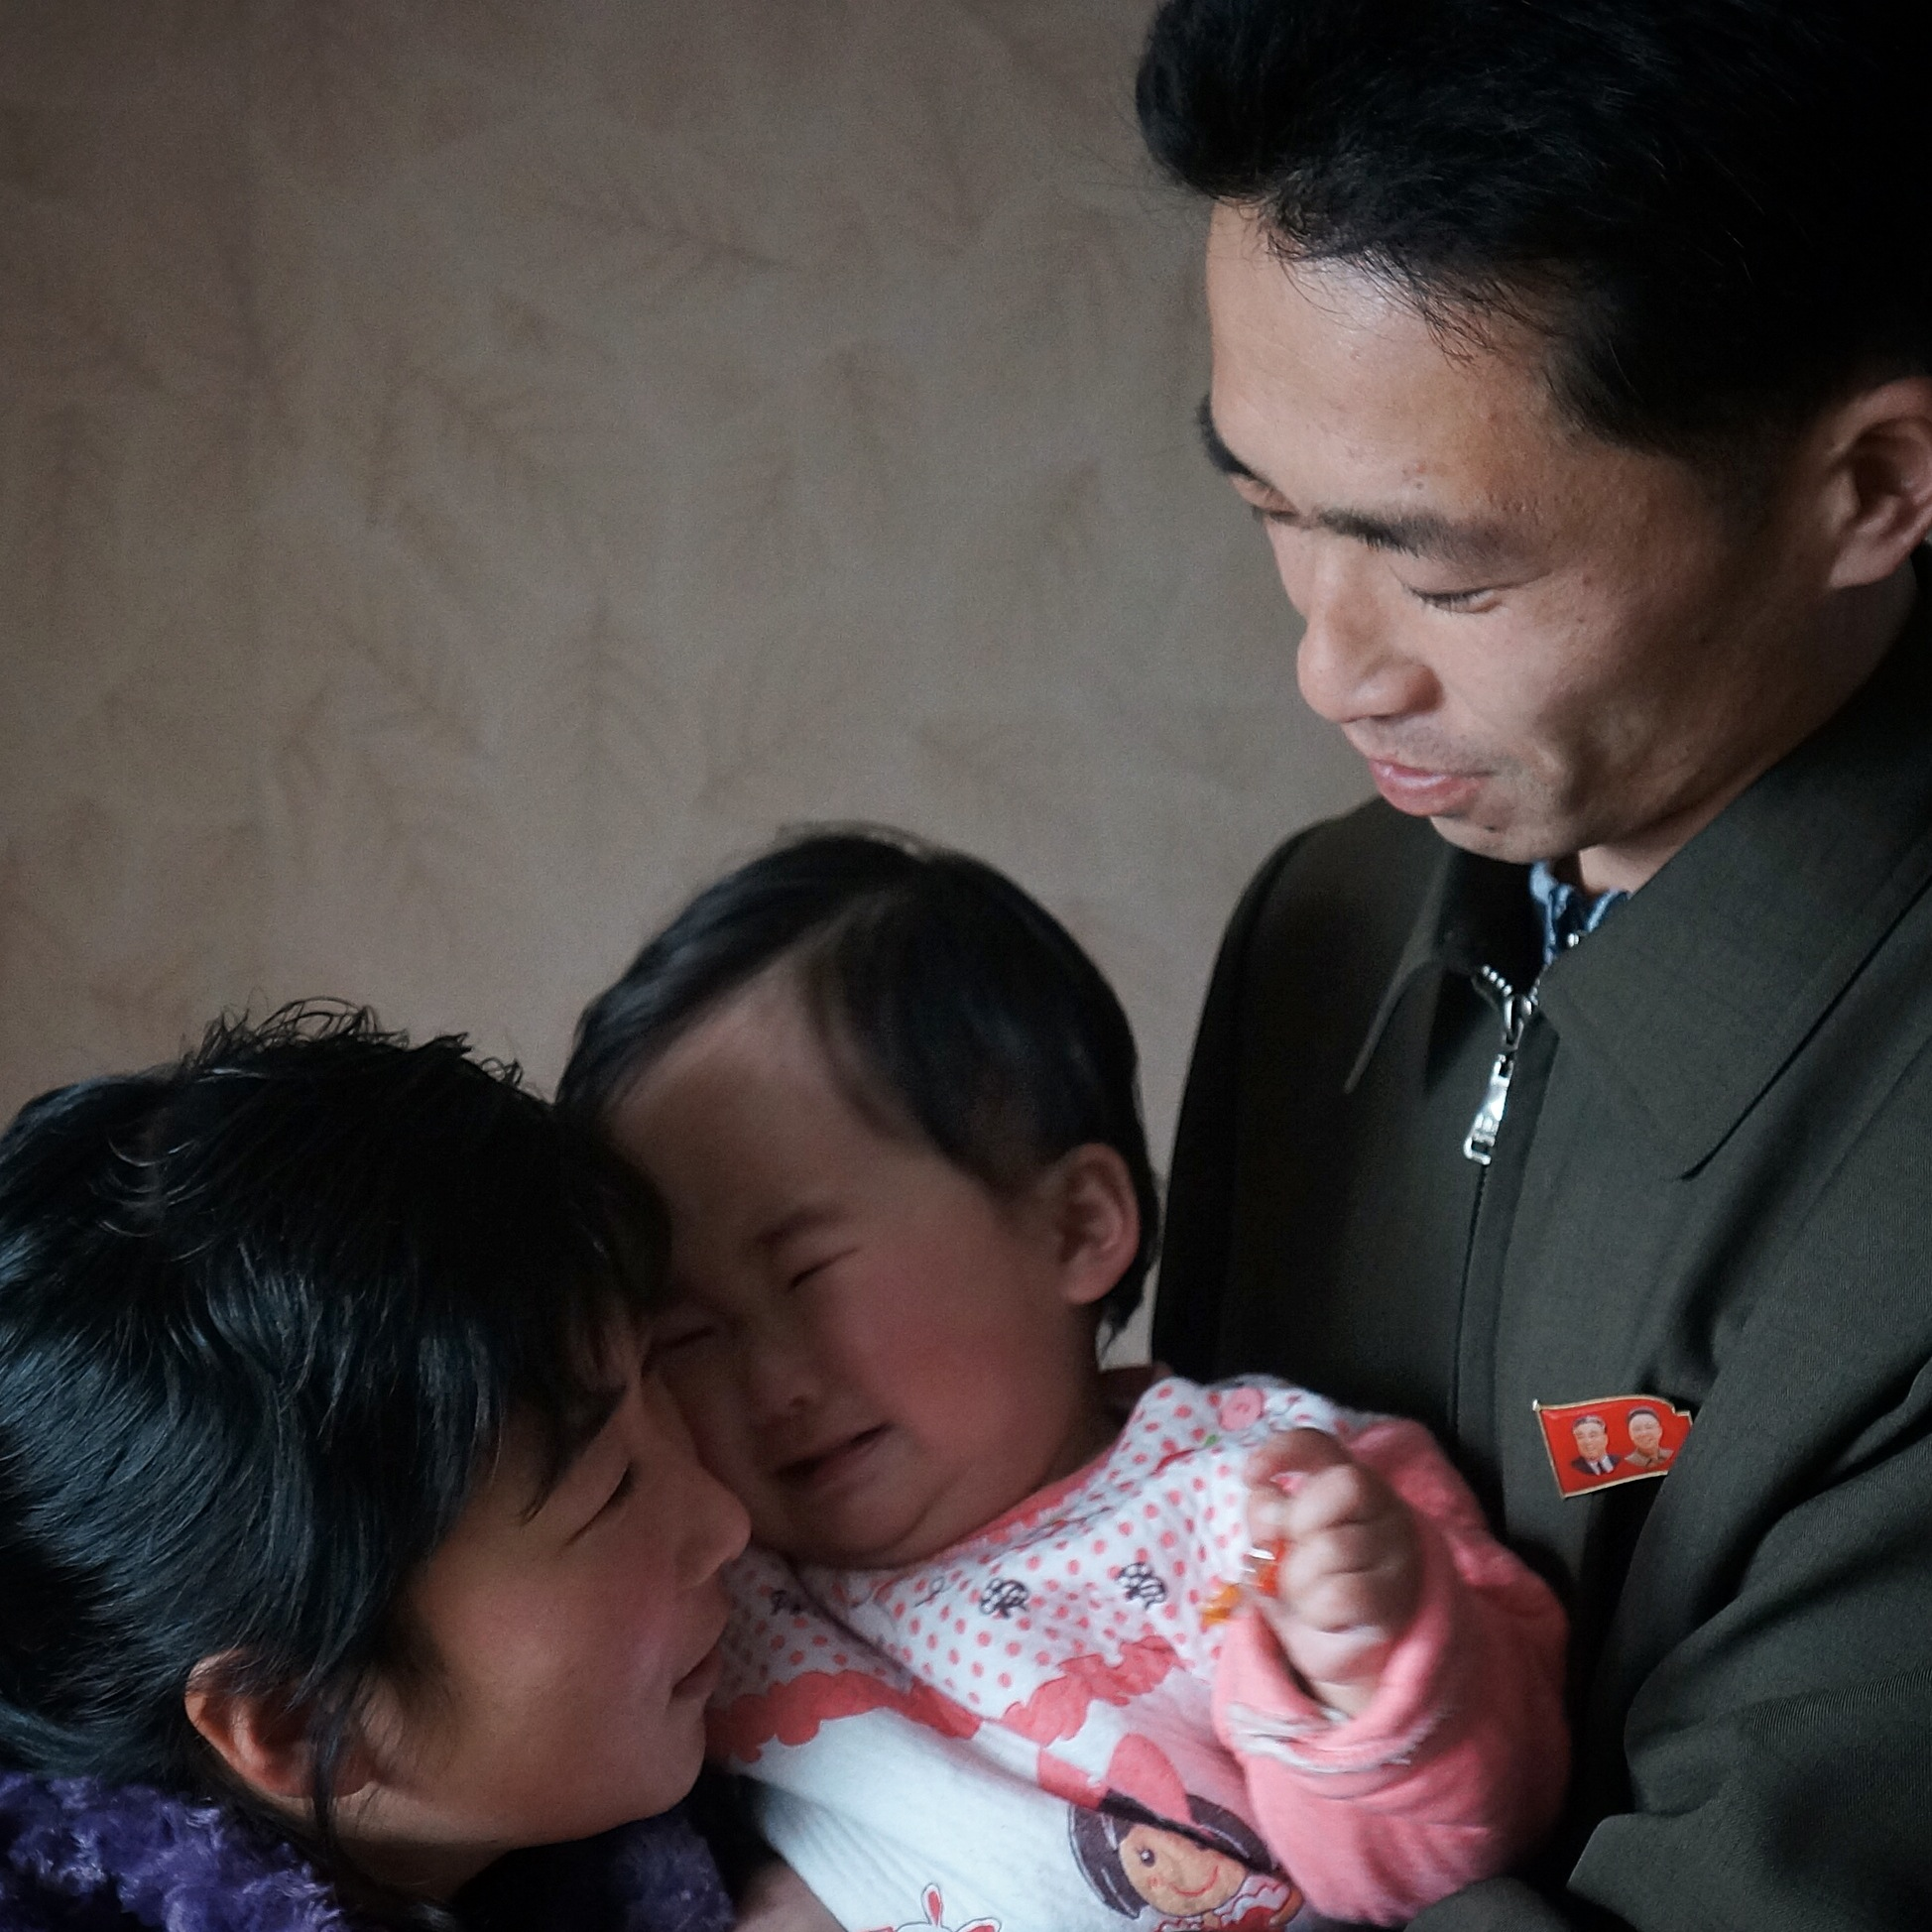 A newlywed North Korean couple comfort their crying baby in their Pyongyang home.